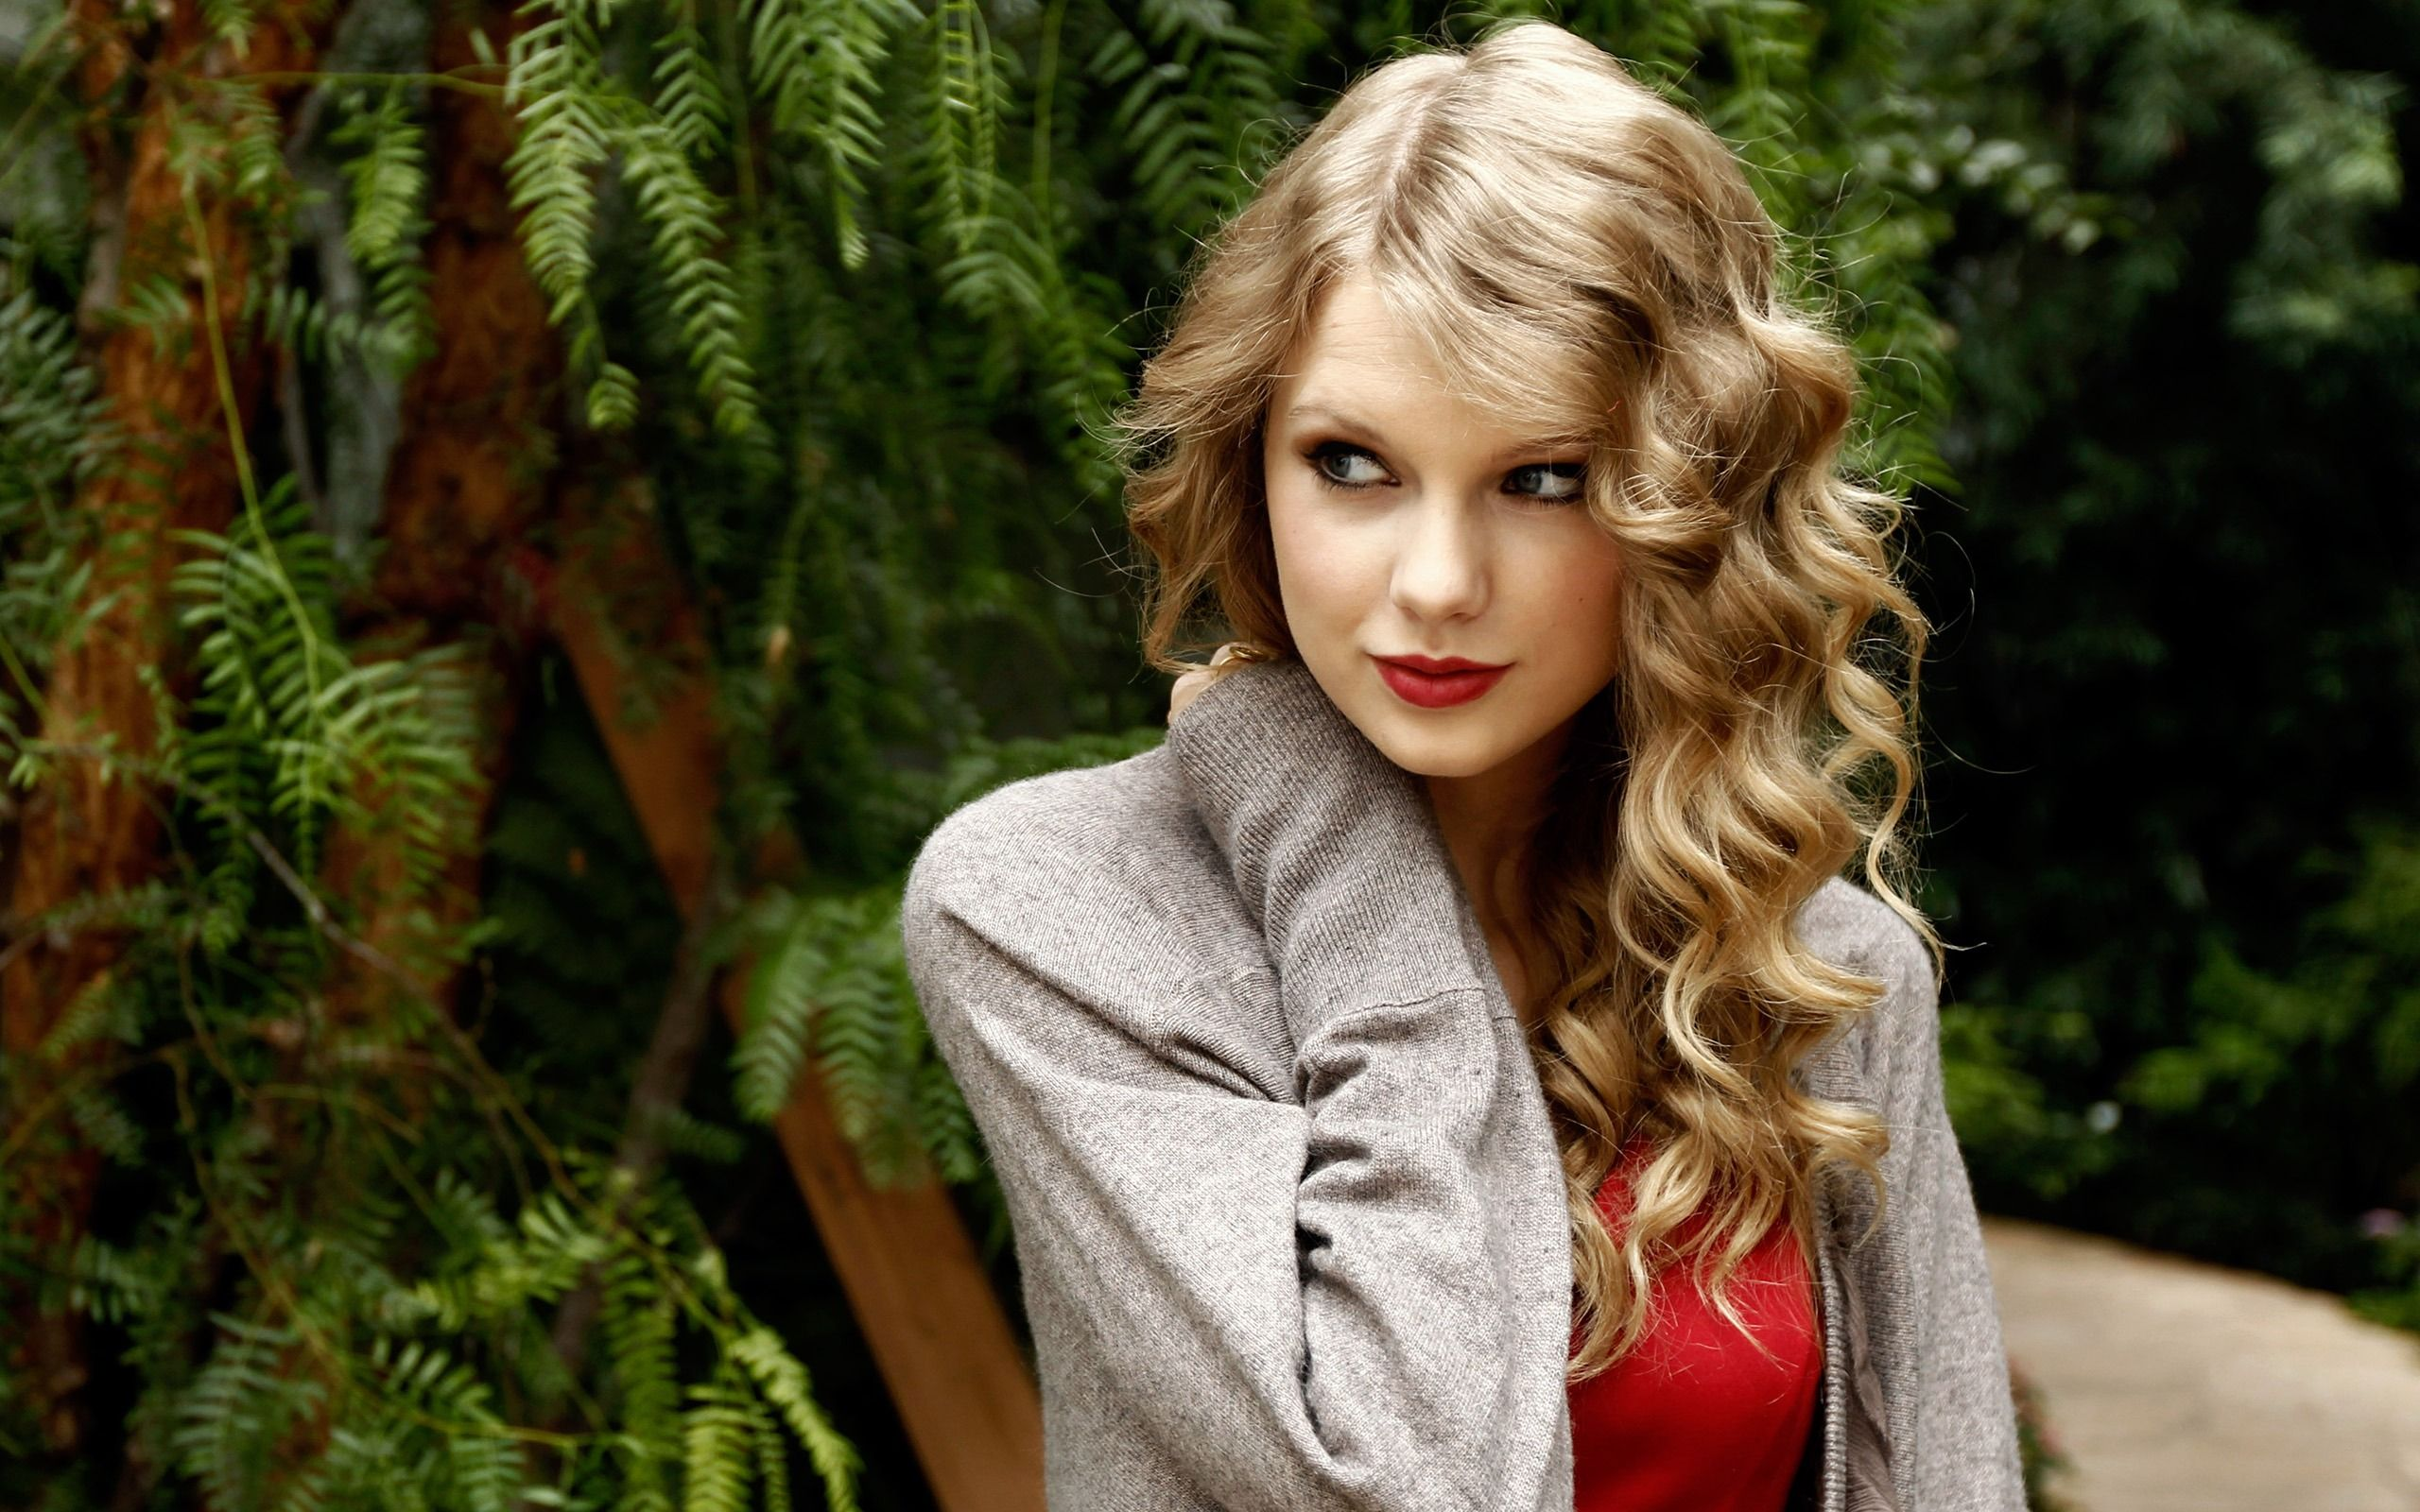 taylor swift red wallpaper free desktop 8 hd wallpapers | À acheter